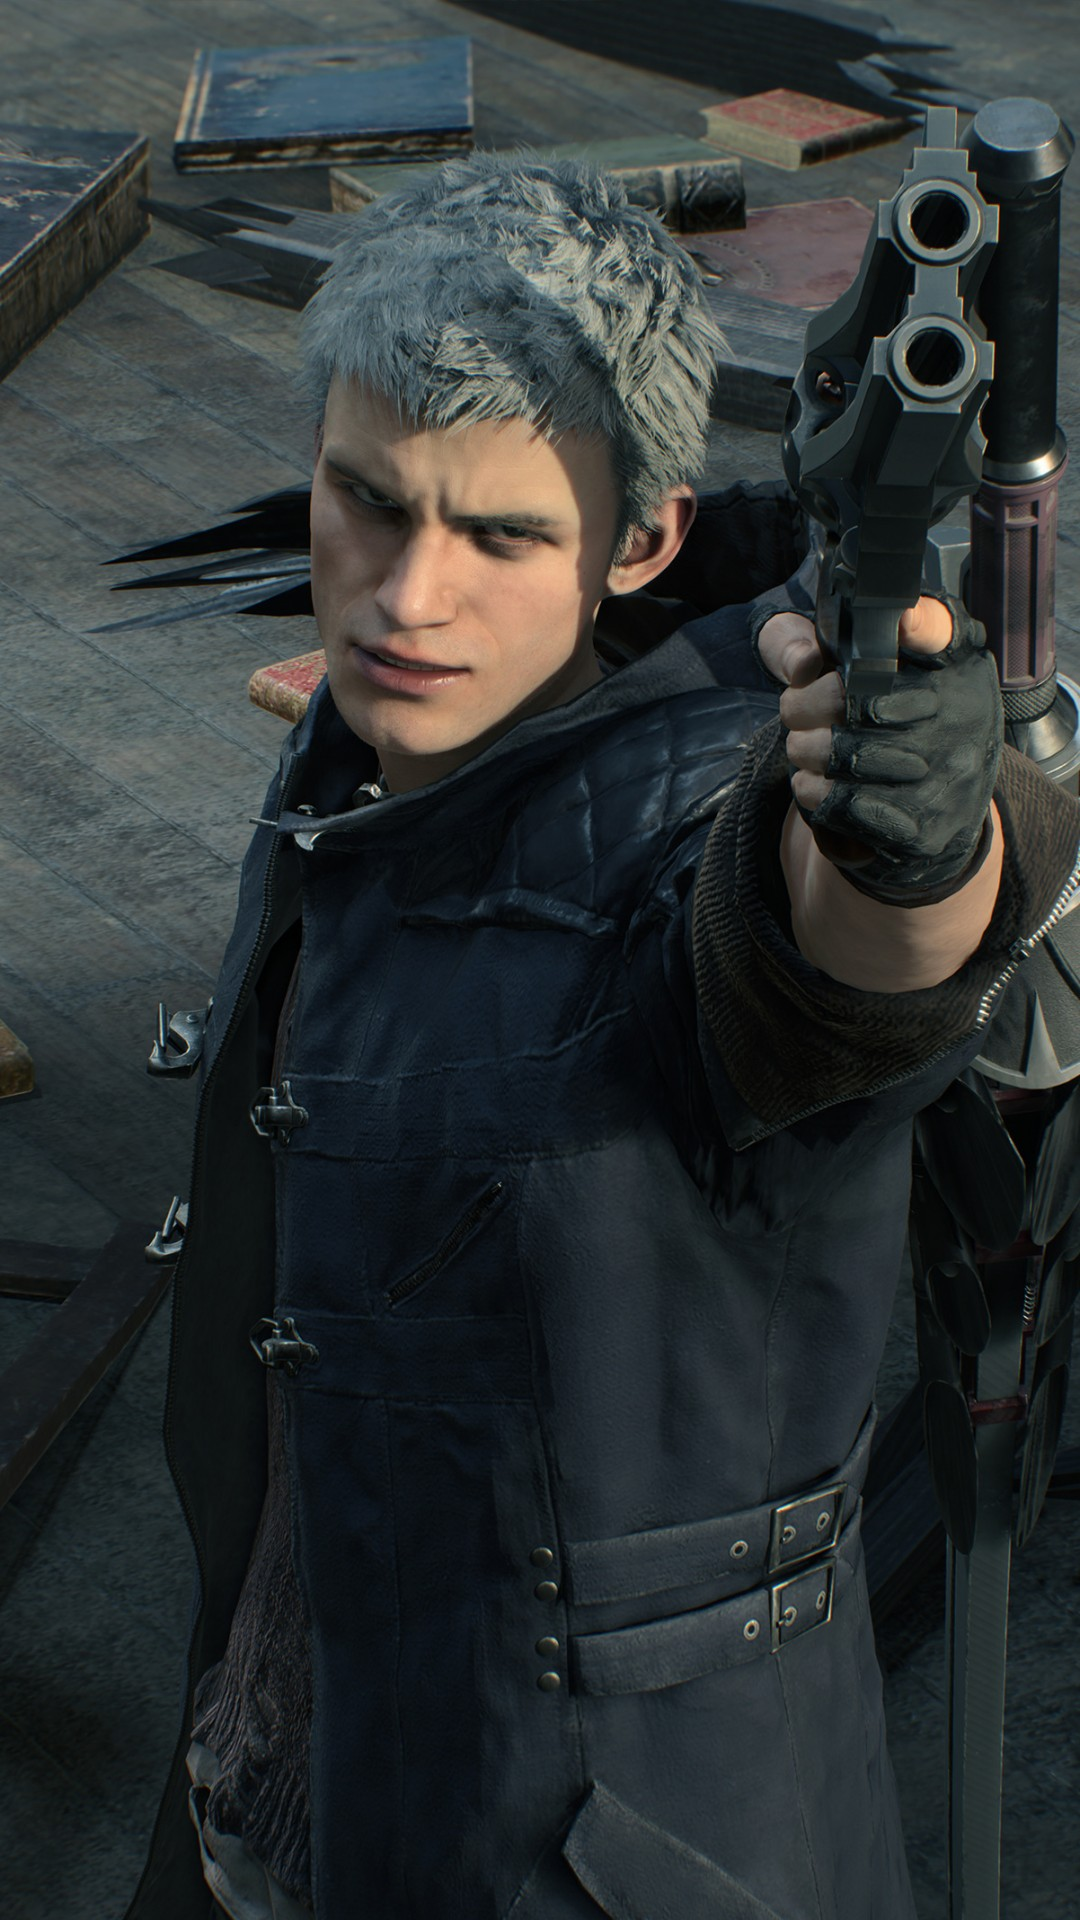 wallpaper devil may cry 5  e3 2018  screenshot  4k  games  18987